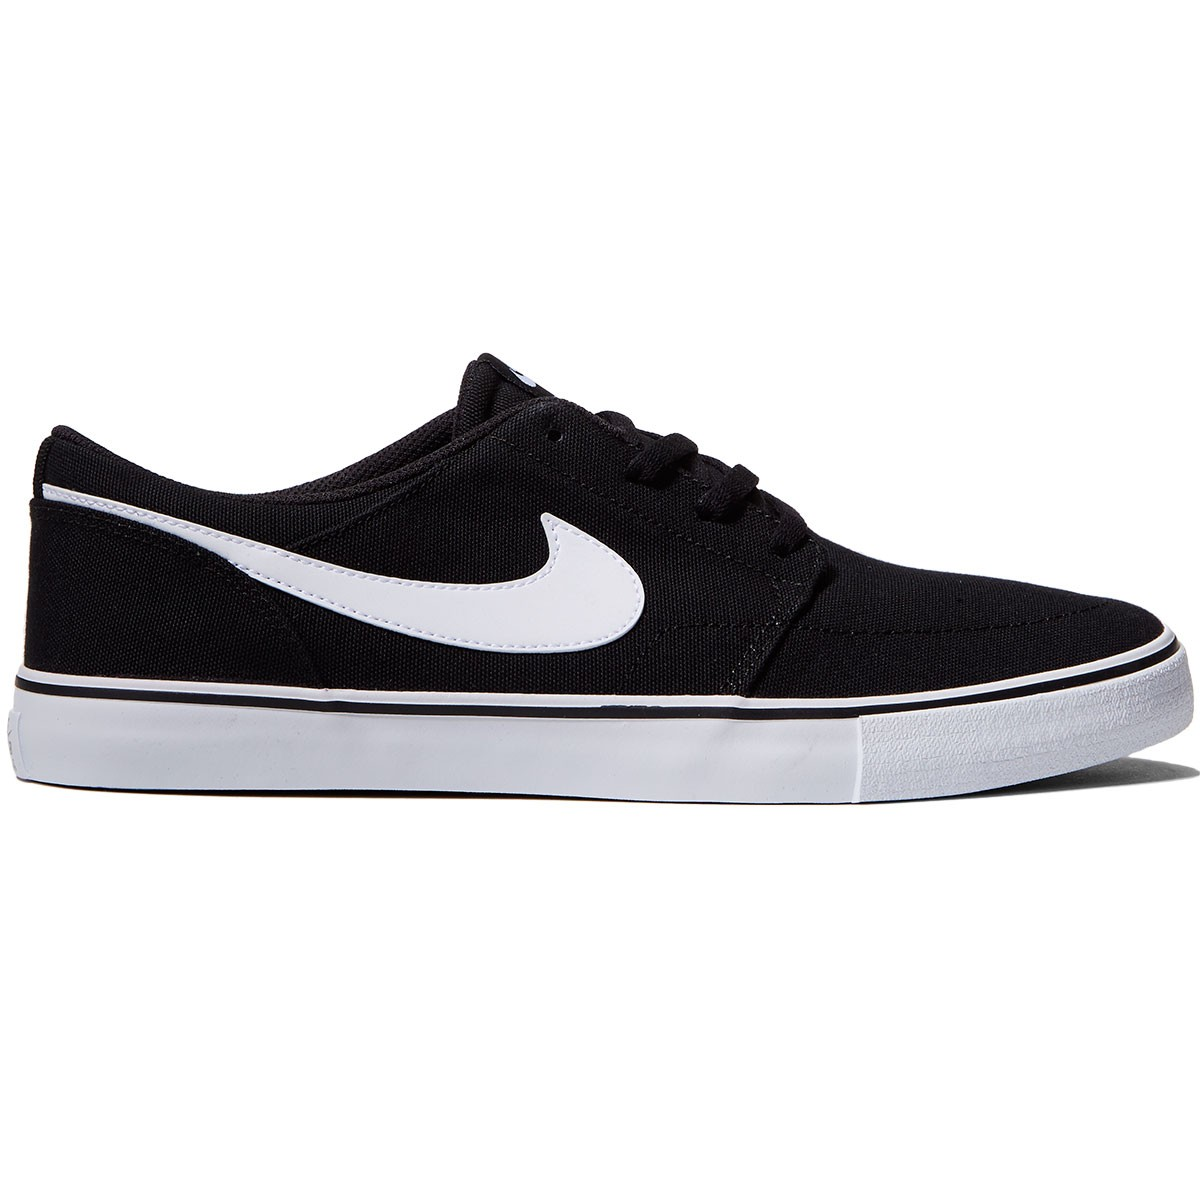 nike sb solarsoft portmore ii canvas shoes. Black Bedroom Furniture Sets. Home Design Ideas